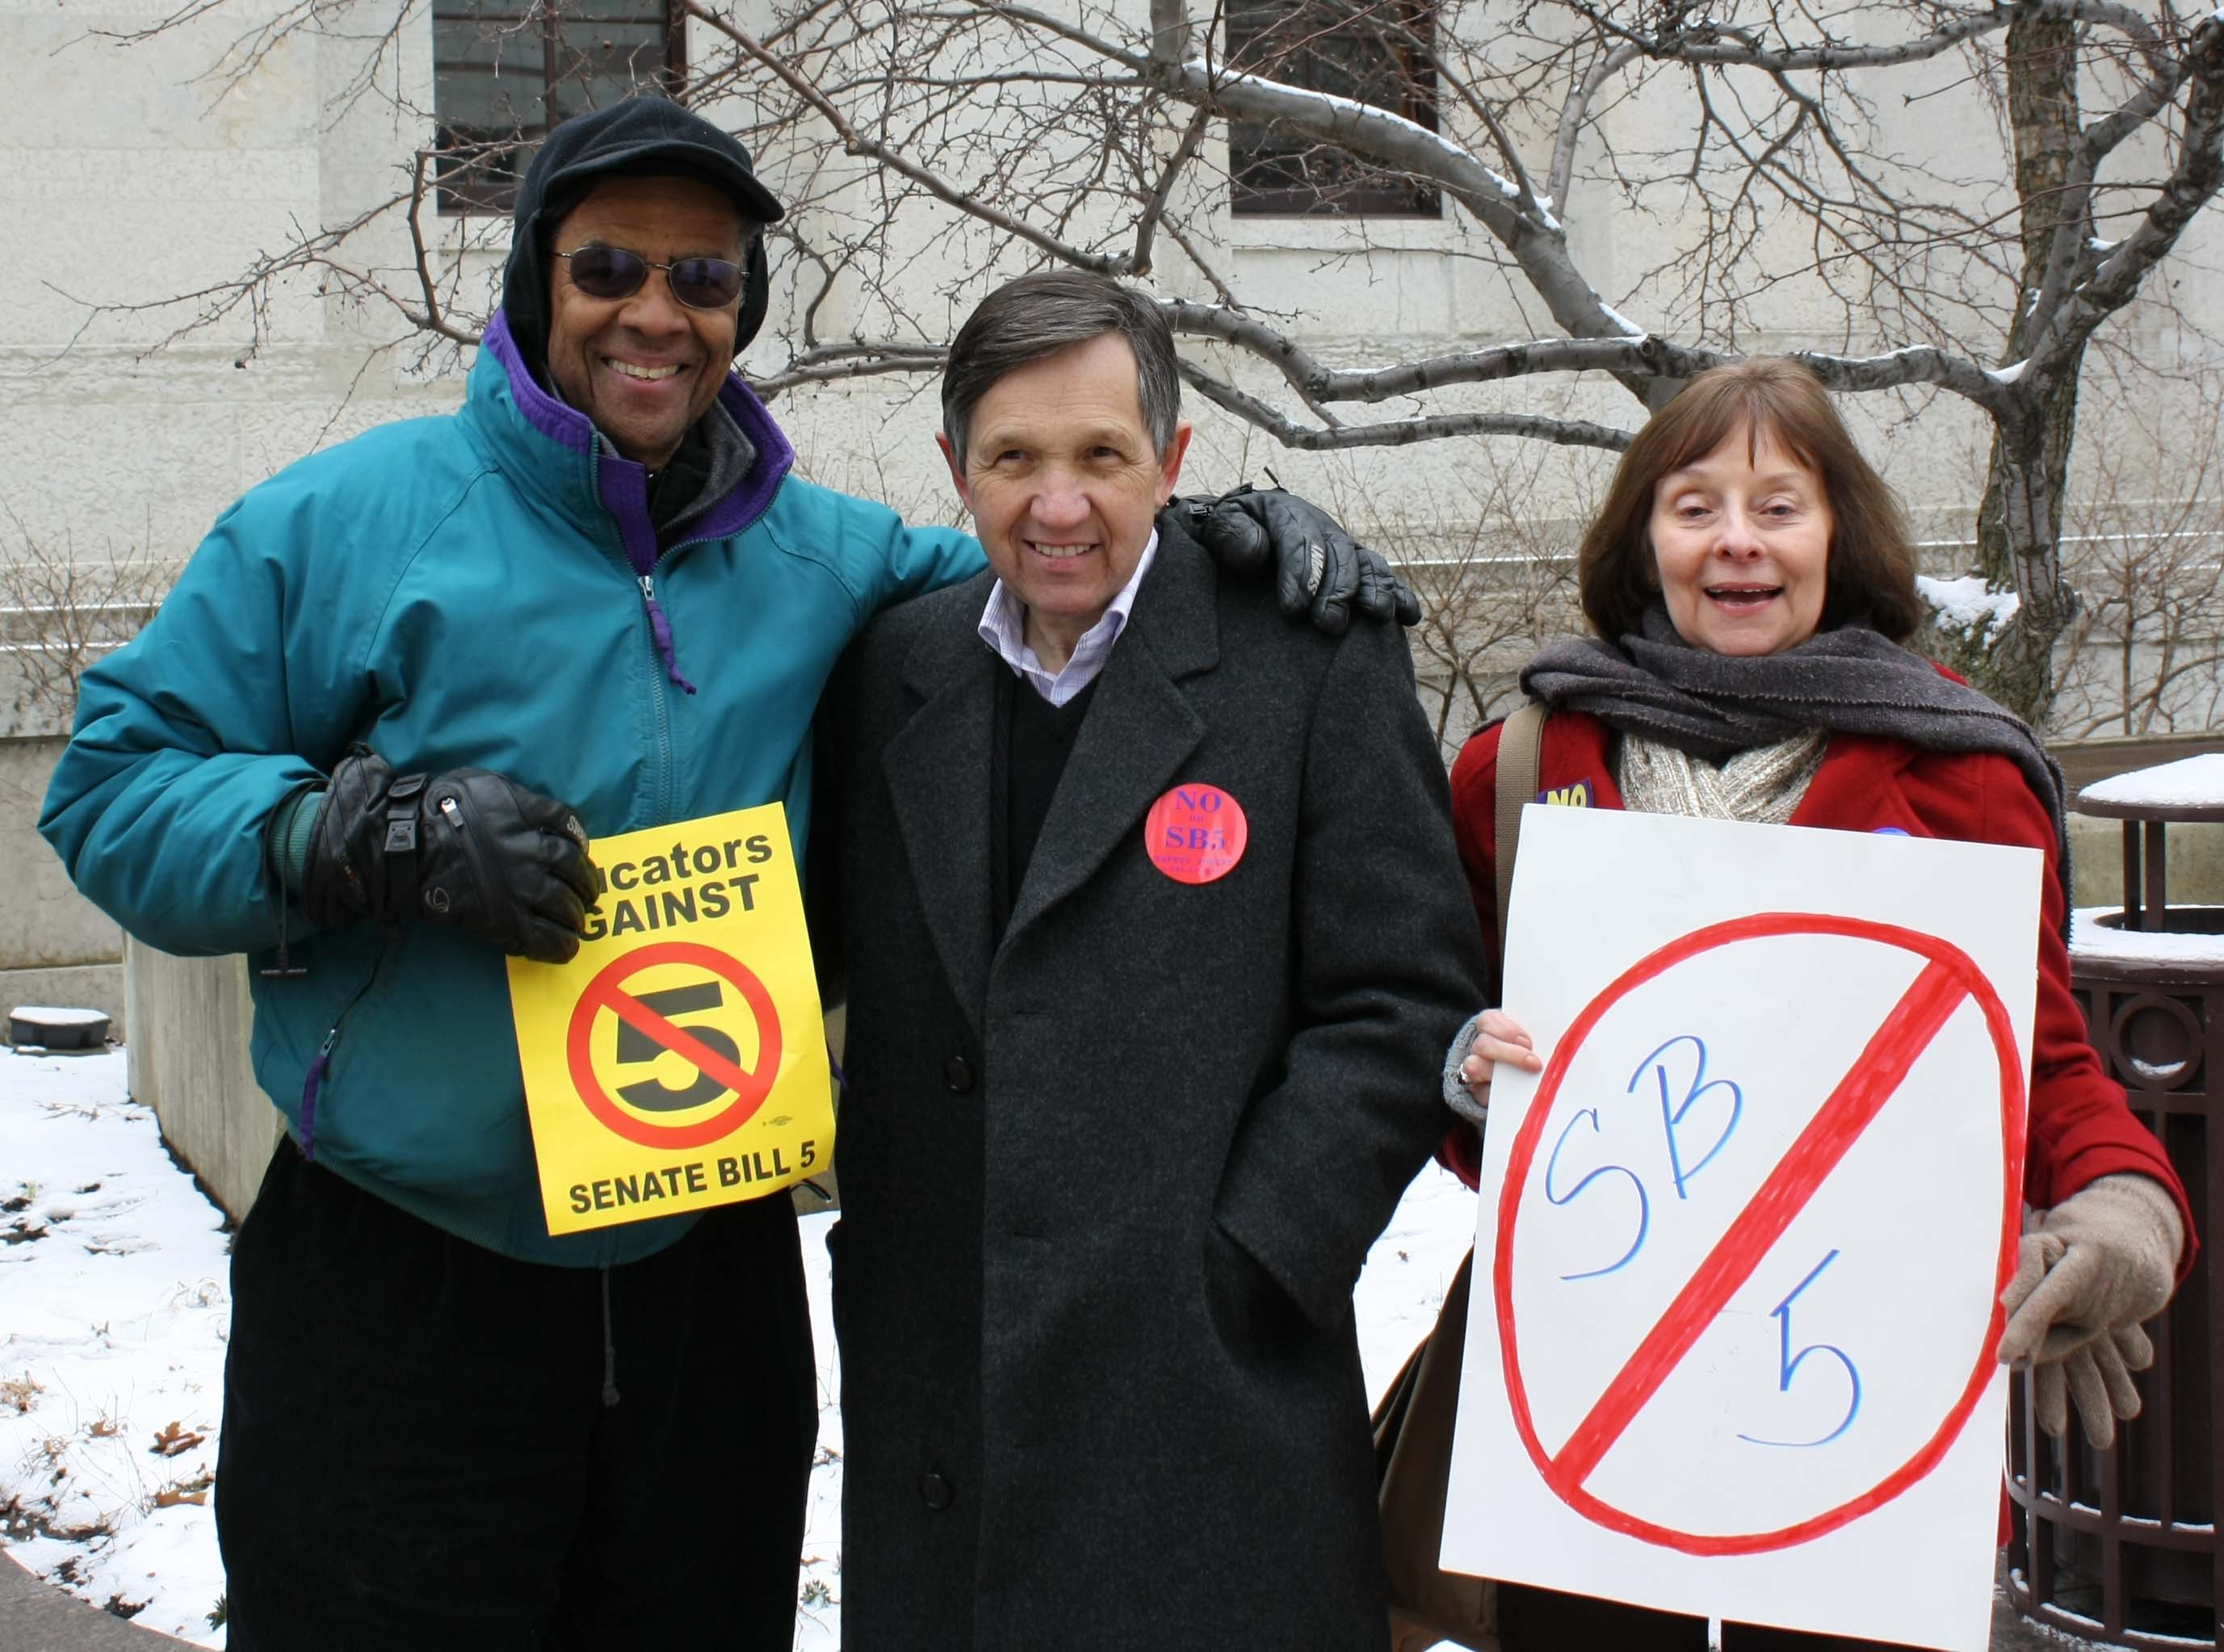 ADA Board members protesting with Rep. Dennis Kucinich in Ohio